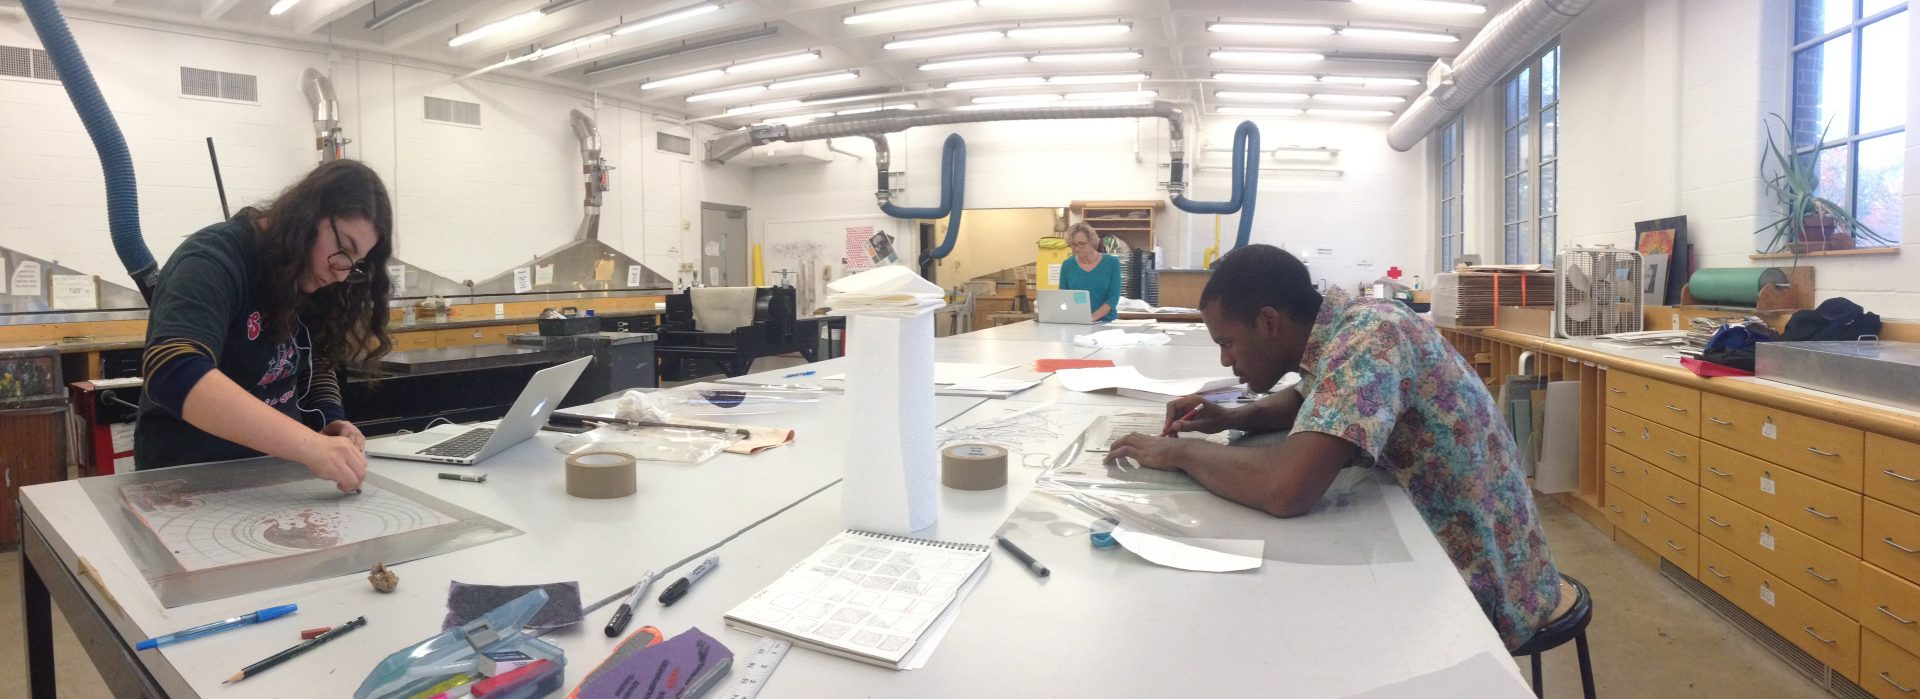 Printmaking at Drew